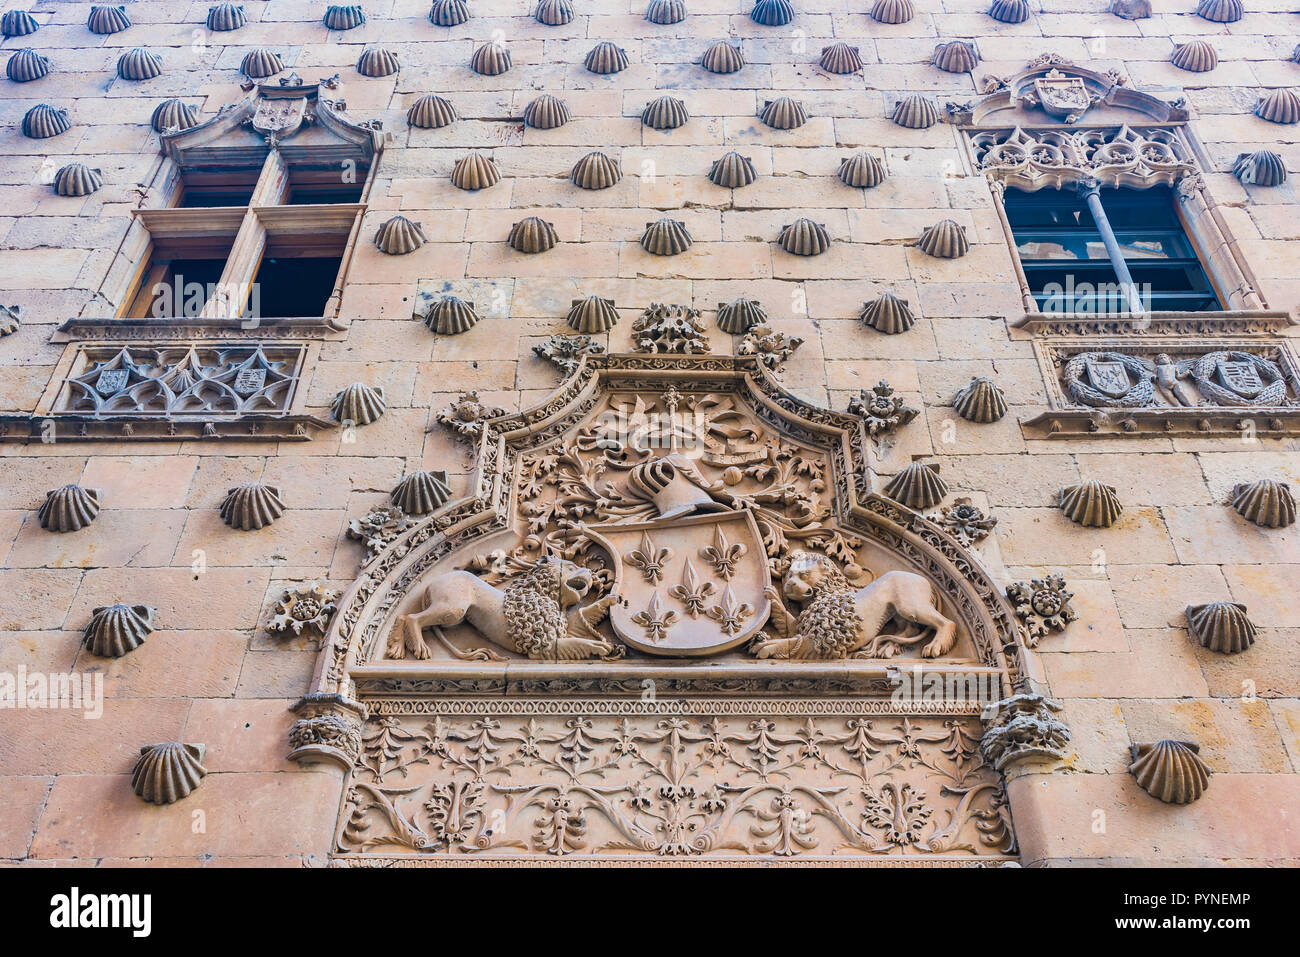 Detail, coat of arms of the Maldonado family and windows in Gothic style. The Casa de las Conchas is a historical building in Salamanca. Its most pecu - Stock Image